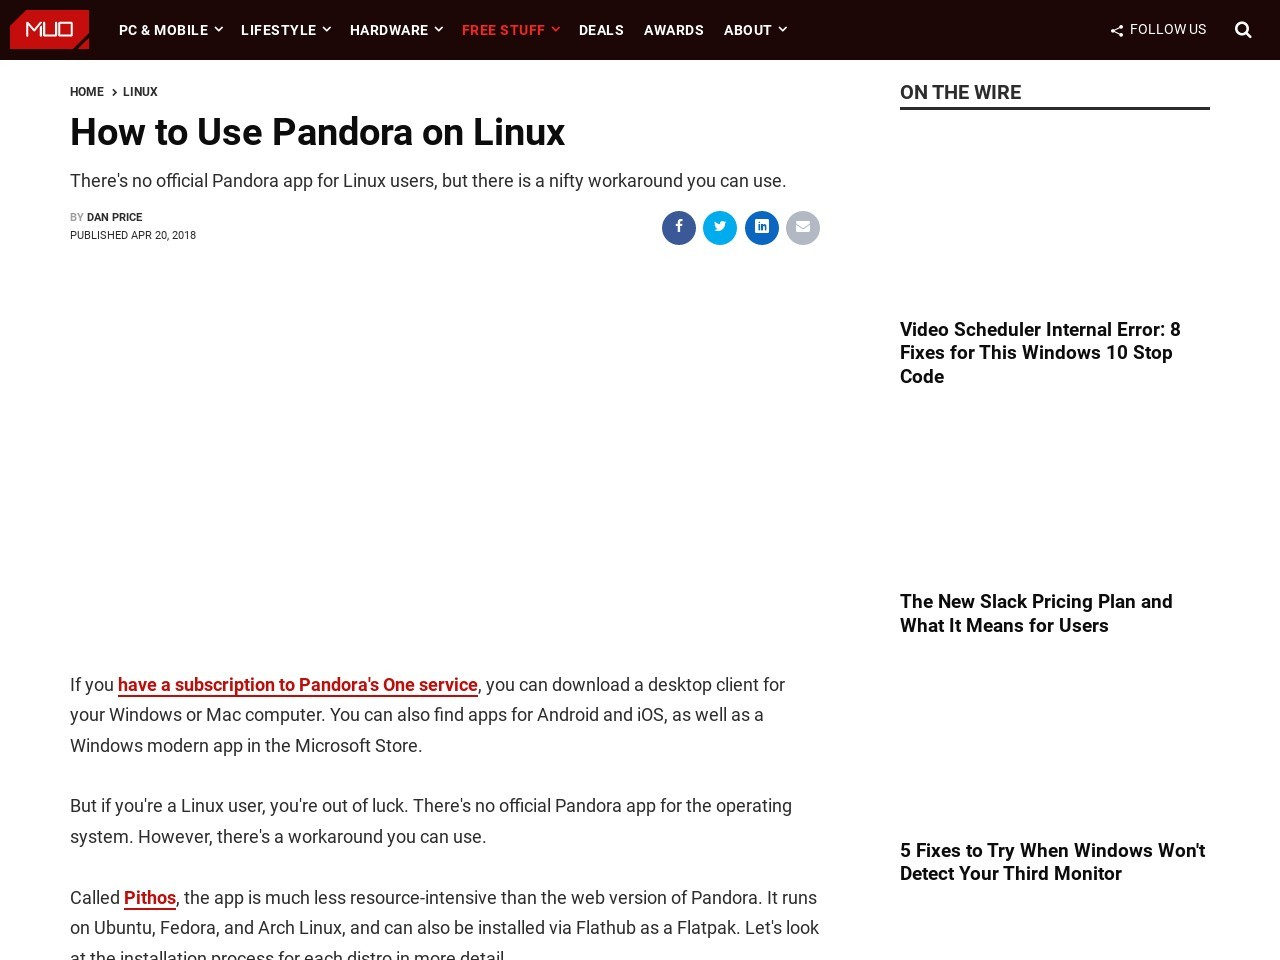 How to Use Pandora on Linux